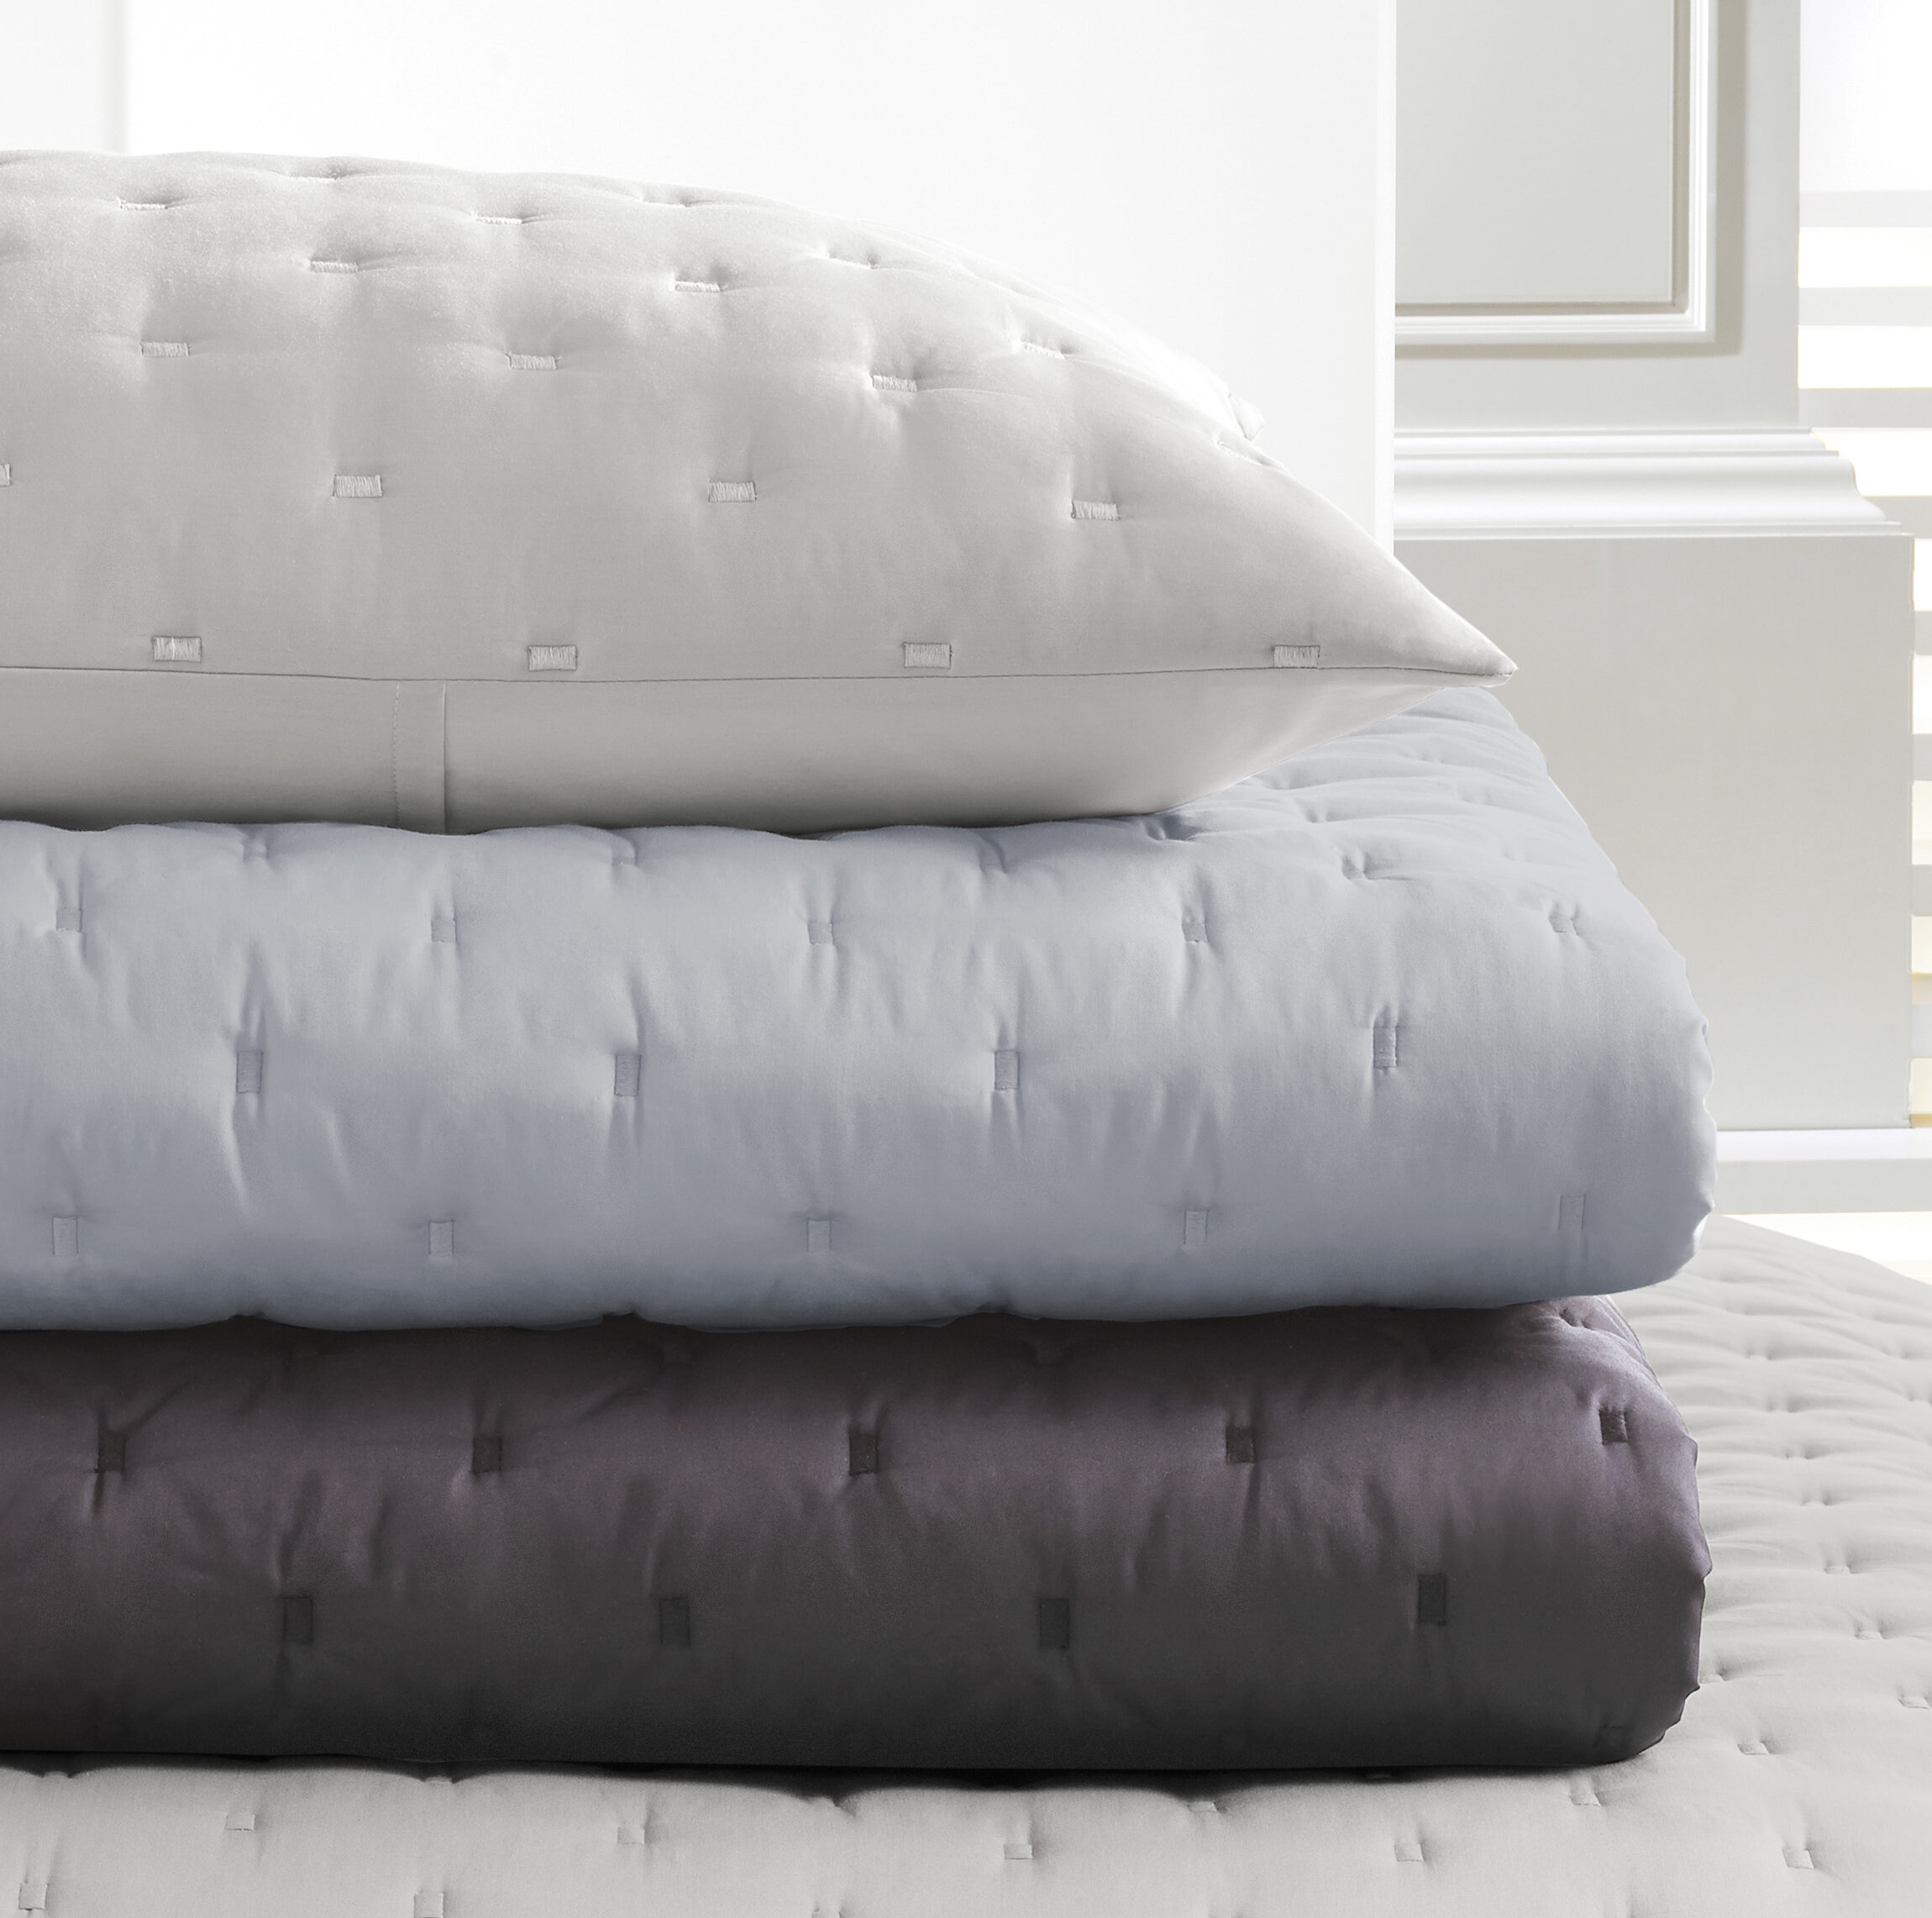 wang ideas in size harrell large home plush canada with c remodel topper twin and foam memory boxspring pillow full es luxury best double king set vera top queen gel mattress brands of